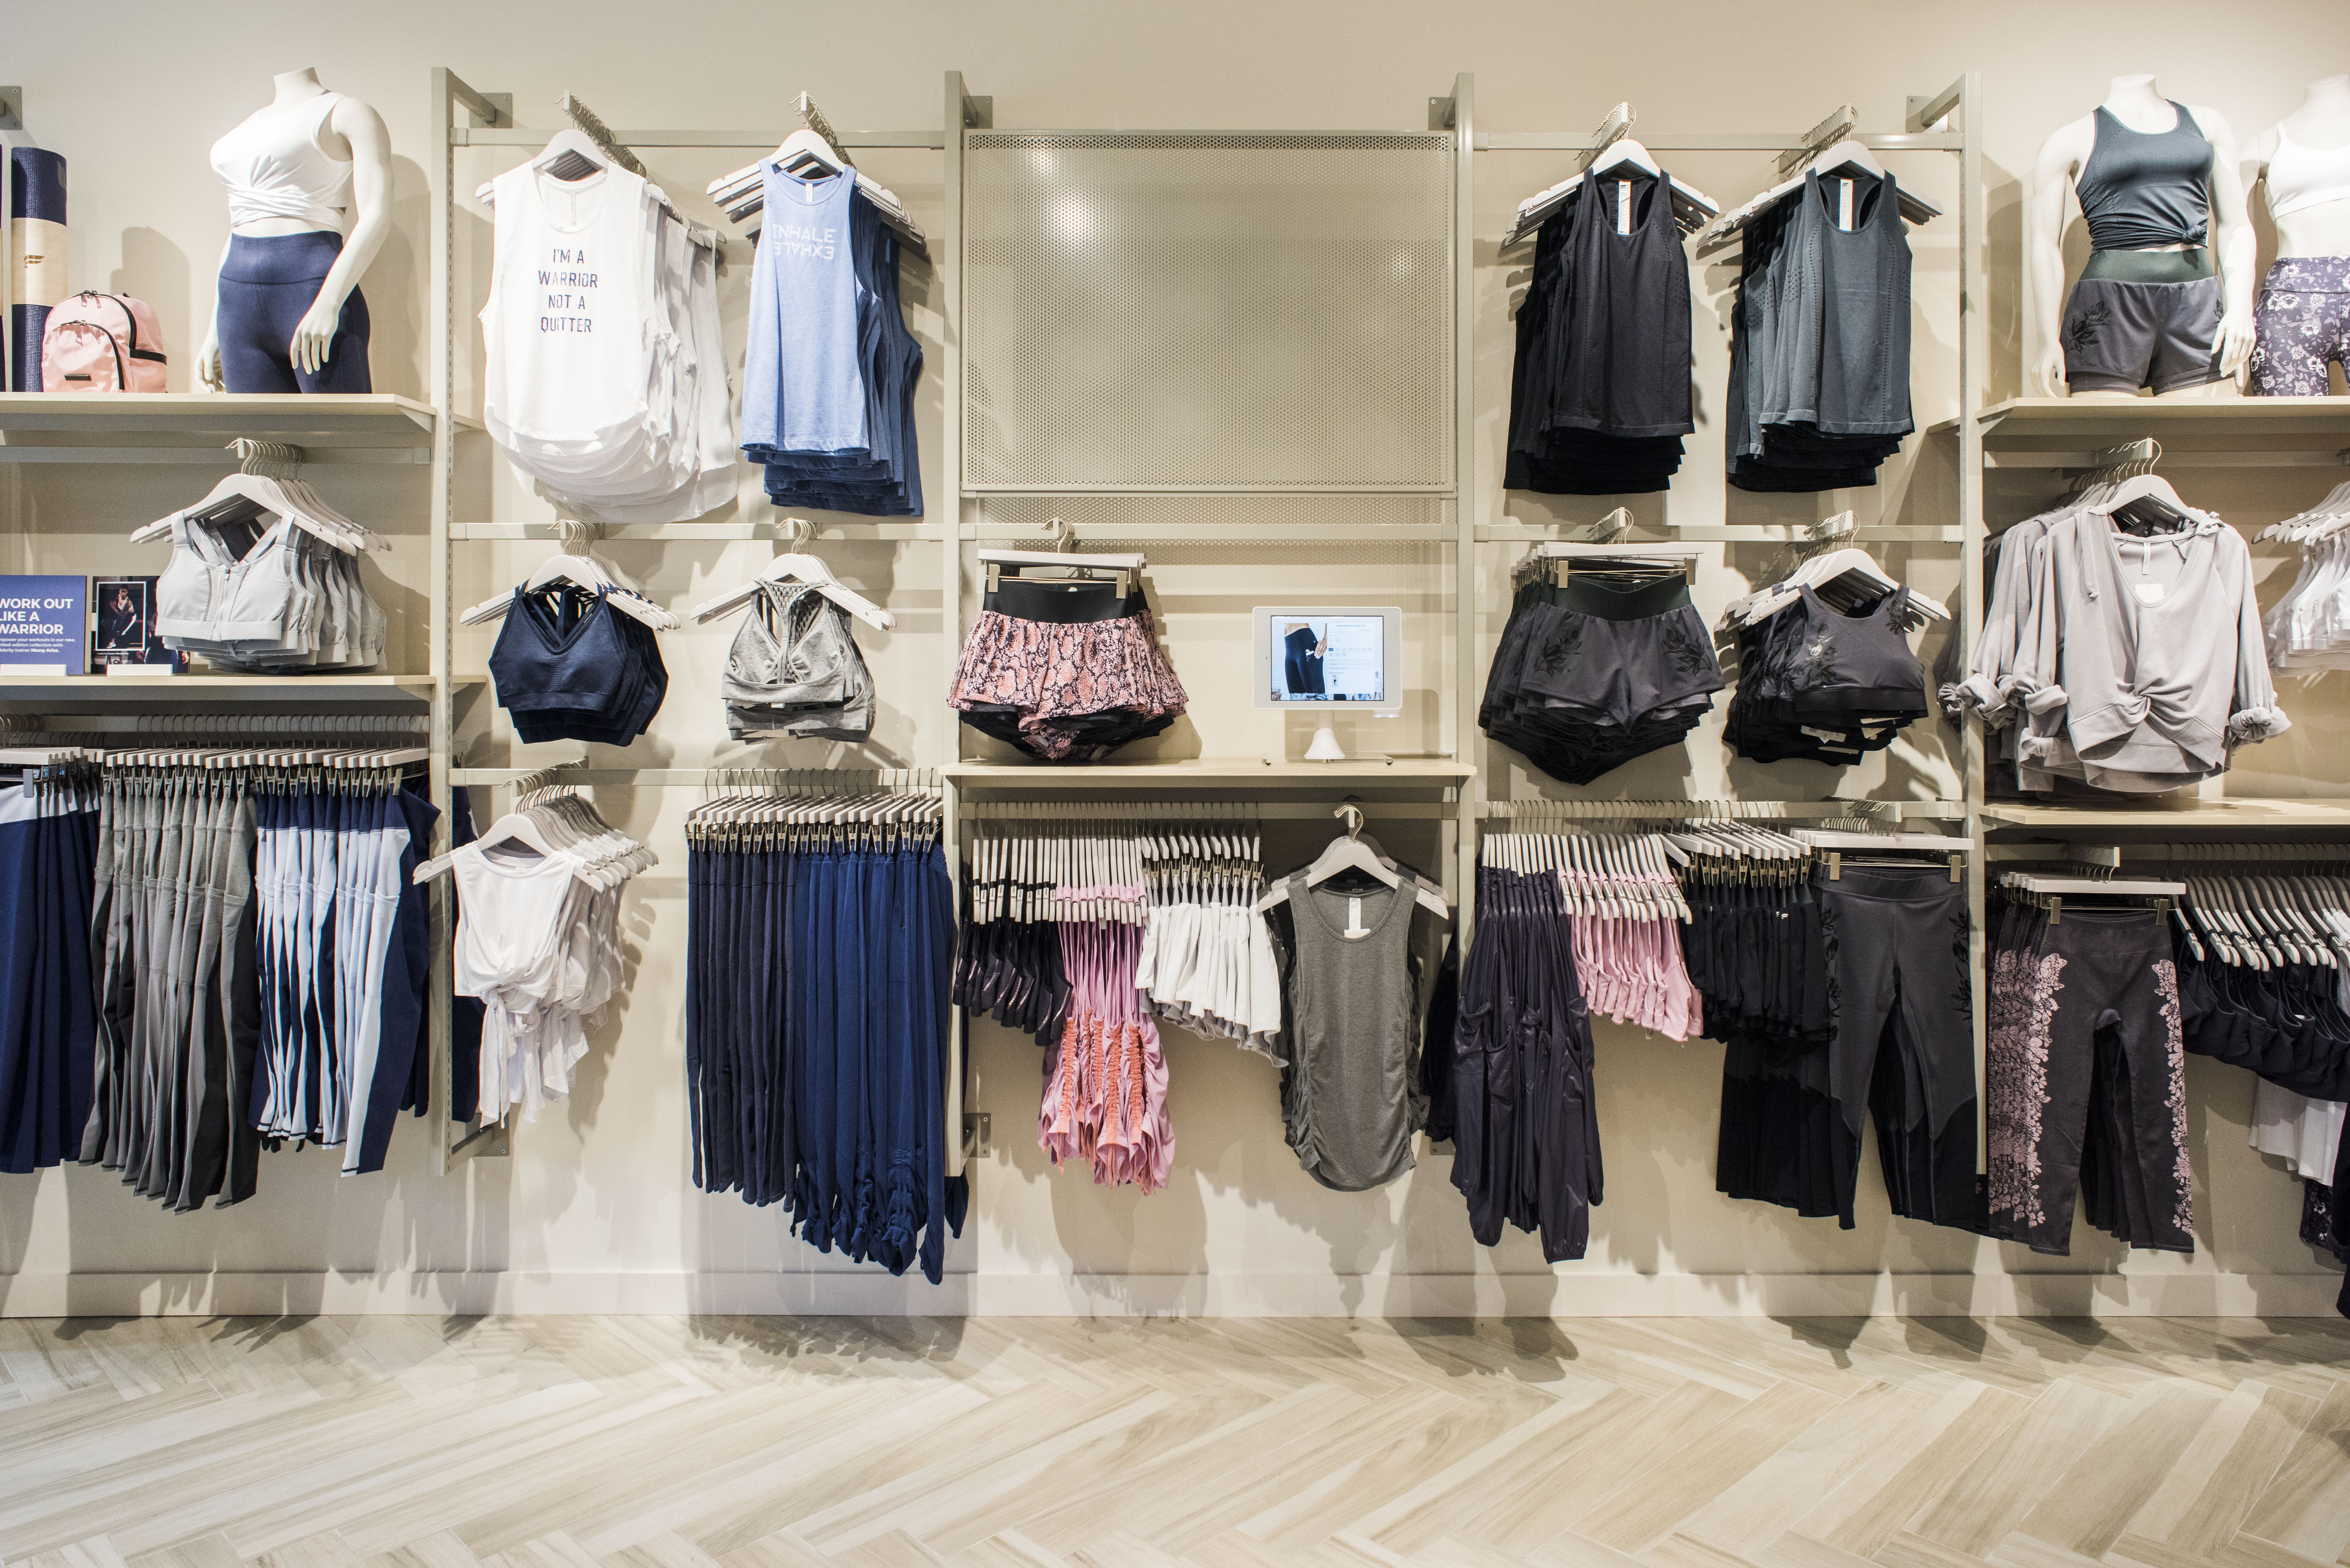 fabletics in-aisle kiosks for membership sign up and price checking